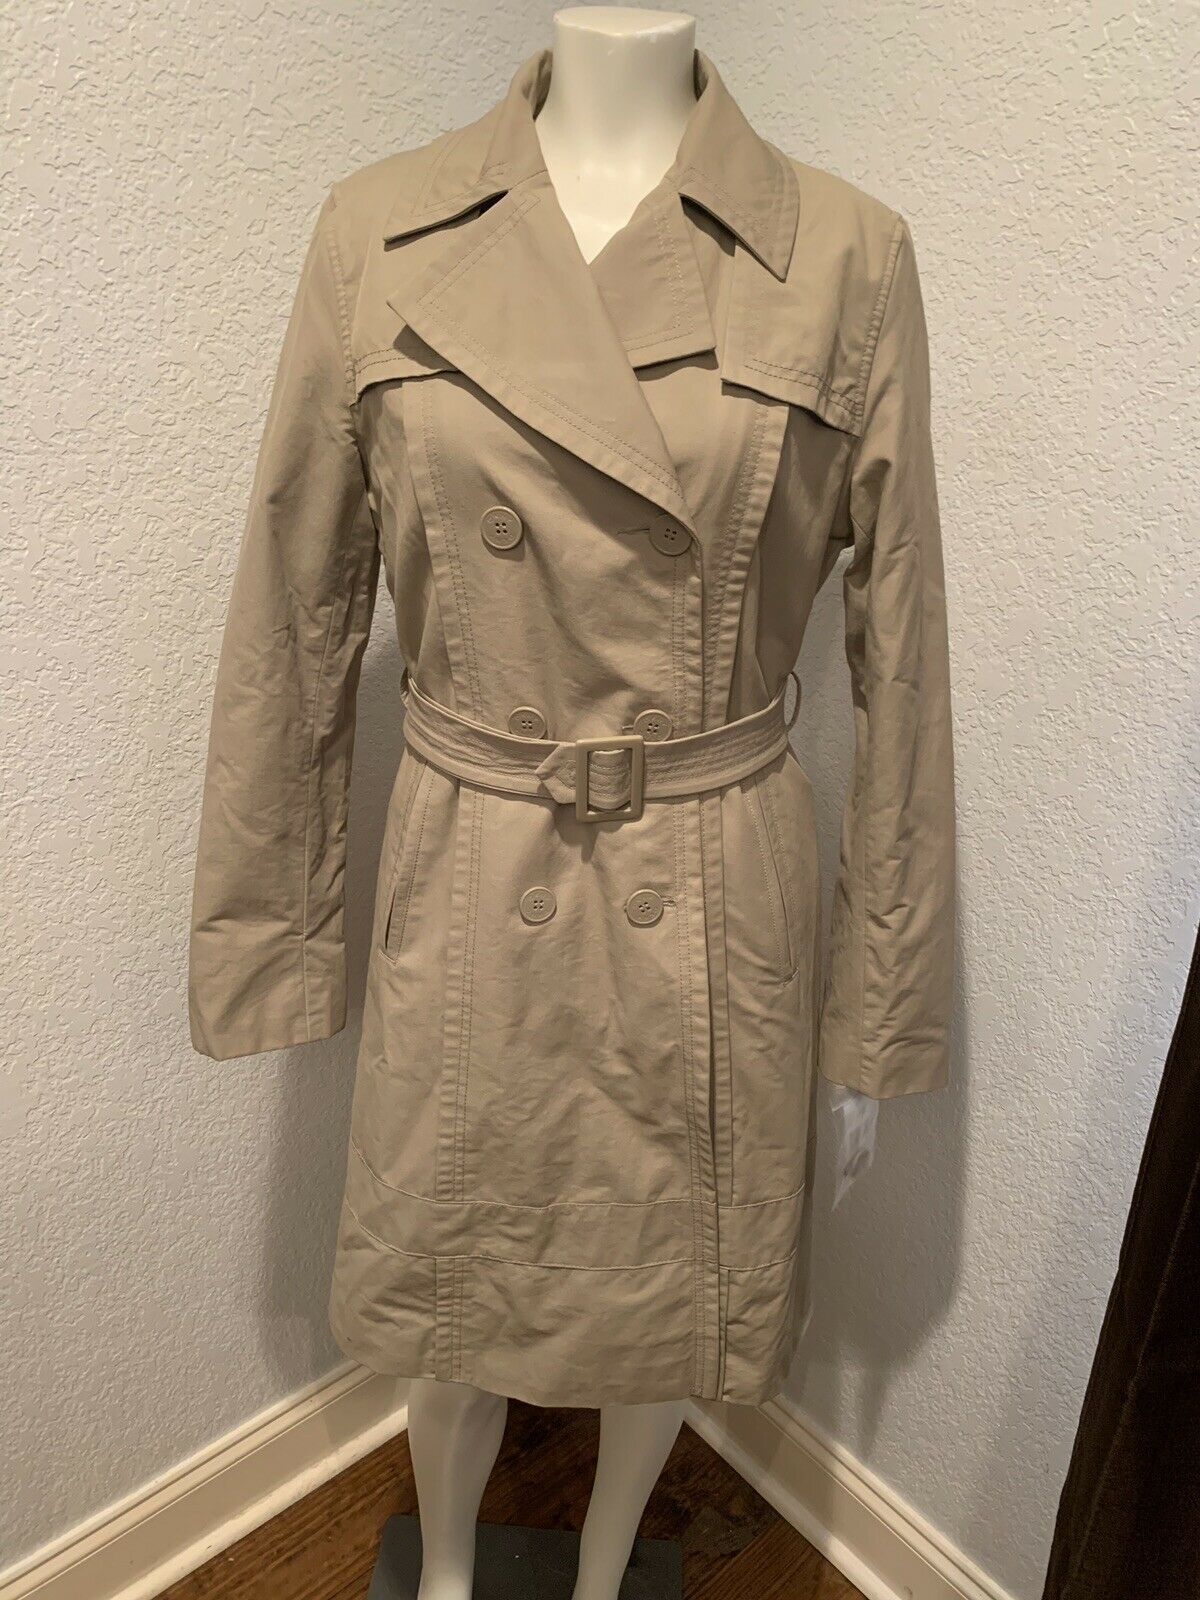 DKNY women Karan New York Saddle Trench Coat Woman's Small